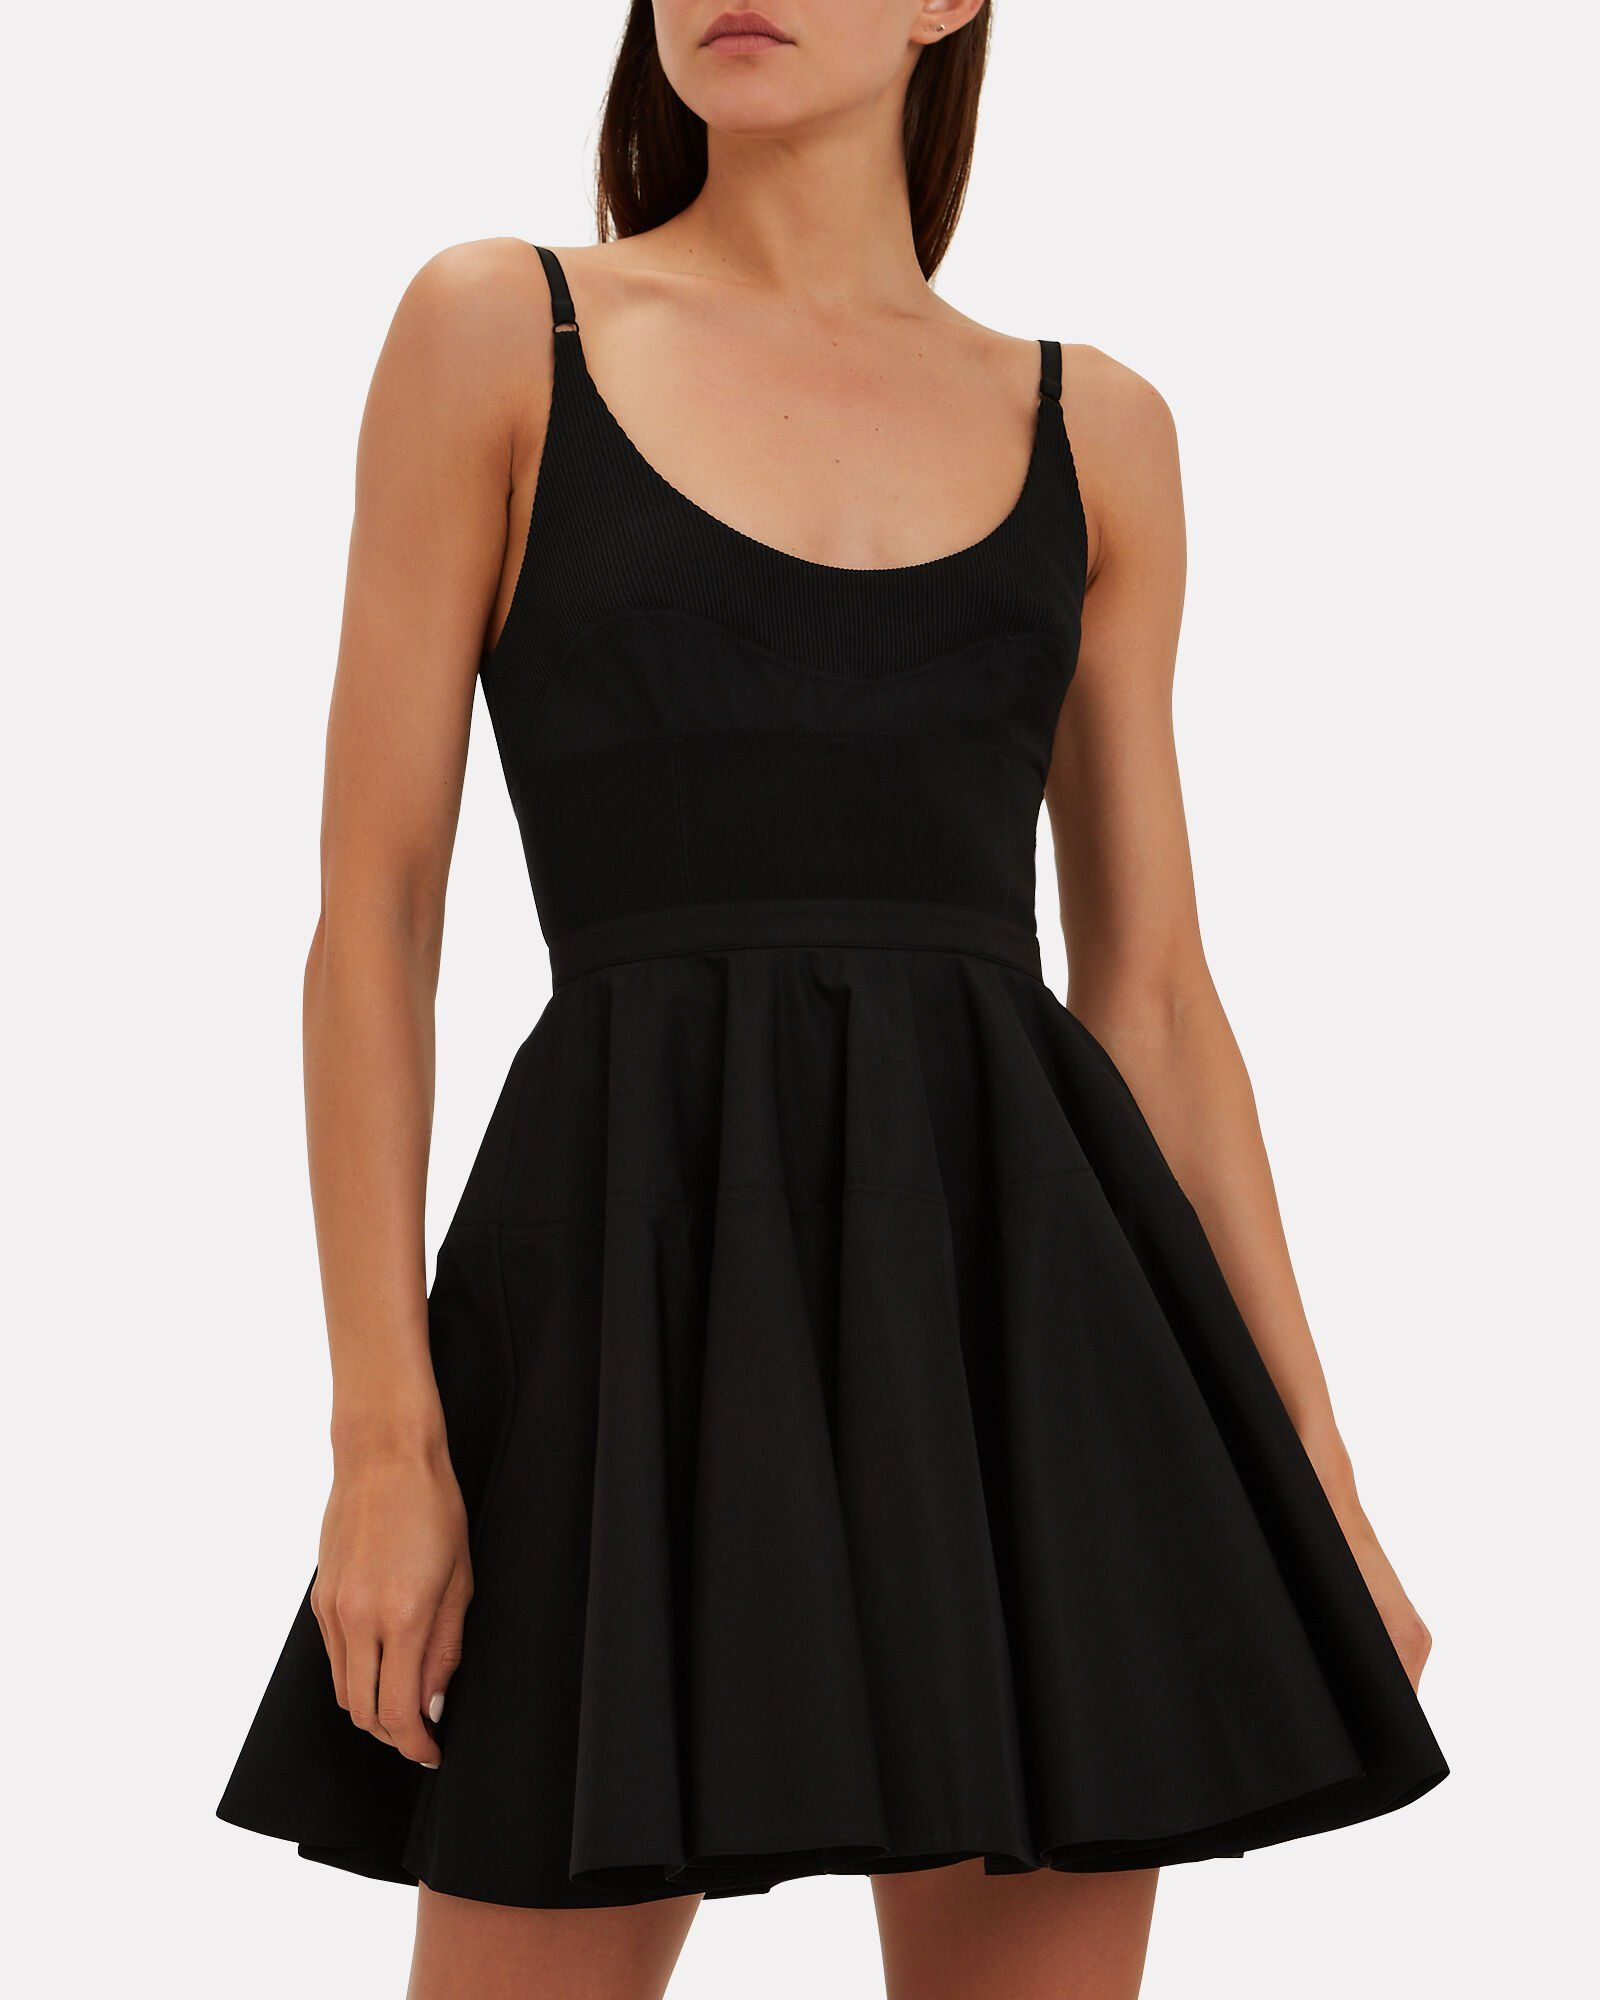 50++ Fit and flare mini dress ideas in 2021